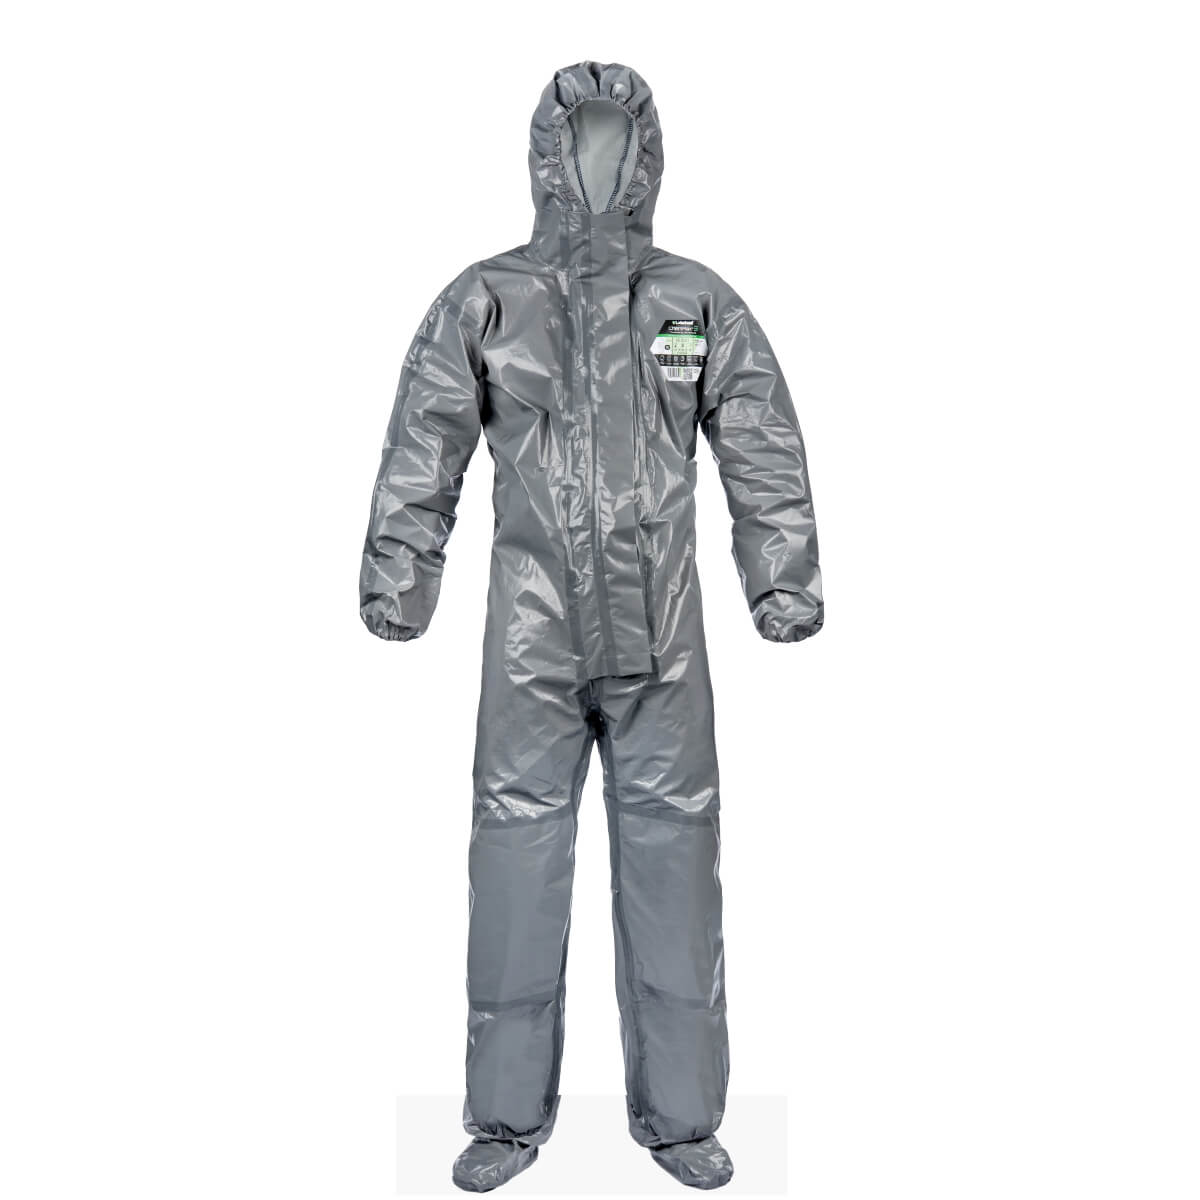 ChemMAX 3 Plus Type 3,4,5&6 Coverall c/w Attached Feet